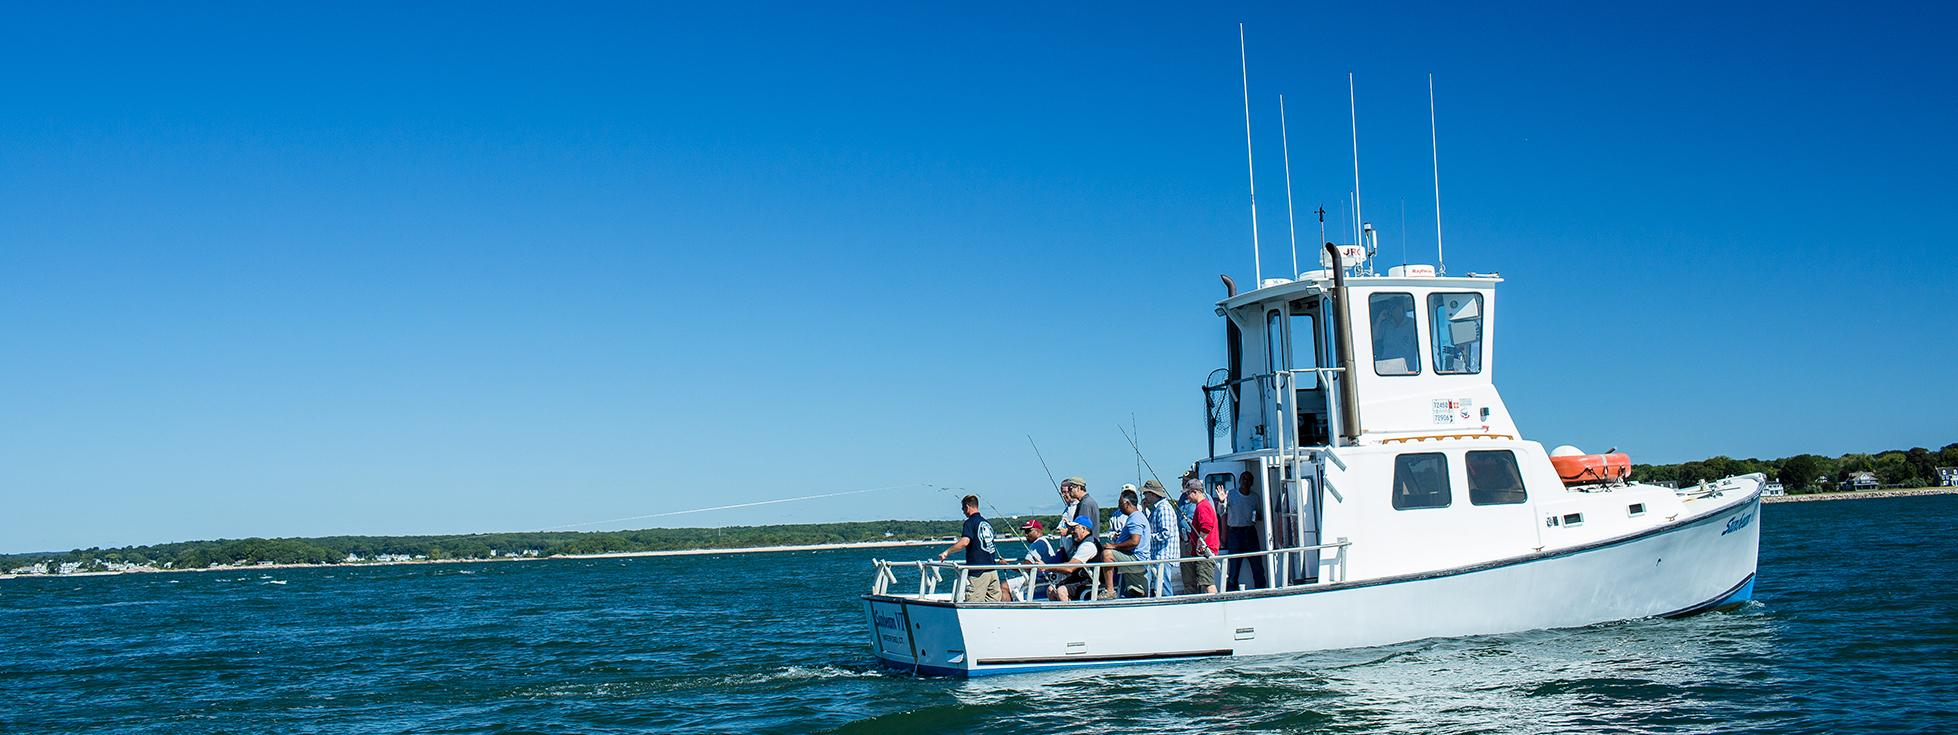 Boat rentals charters visit ct for Fishing trips in ct